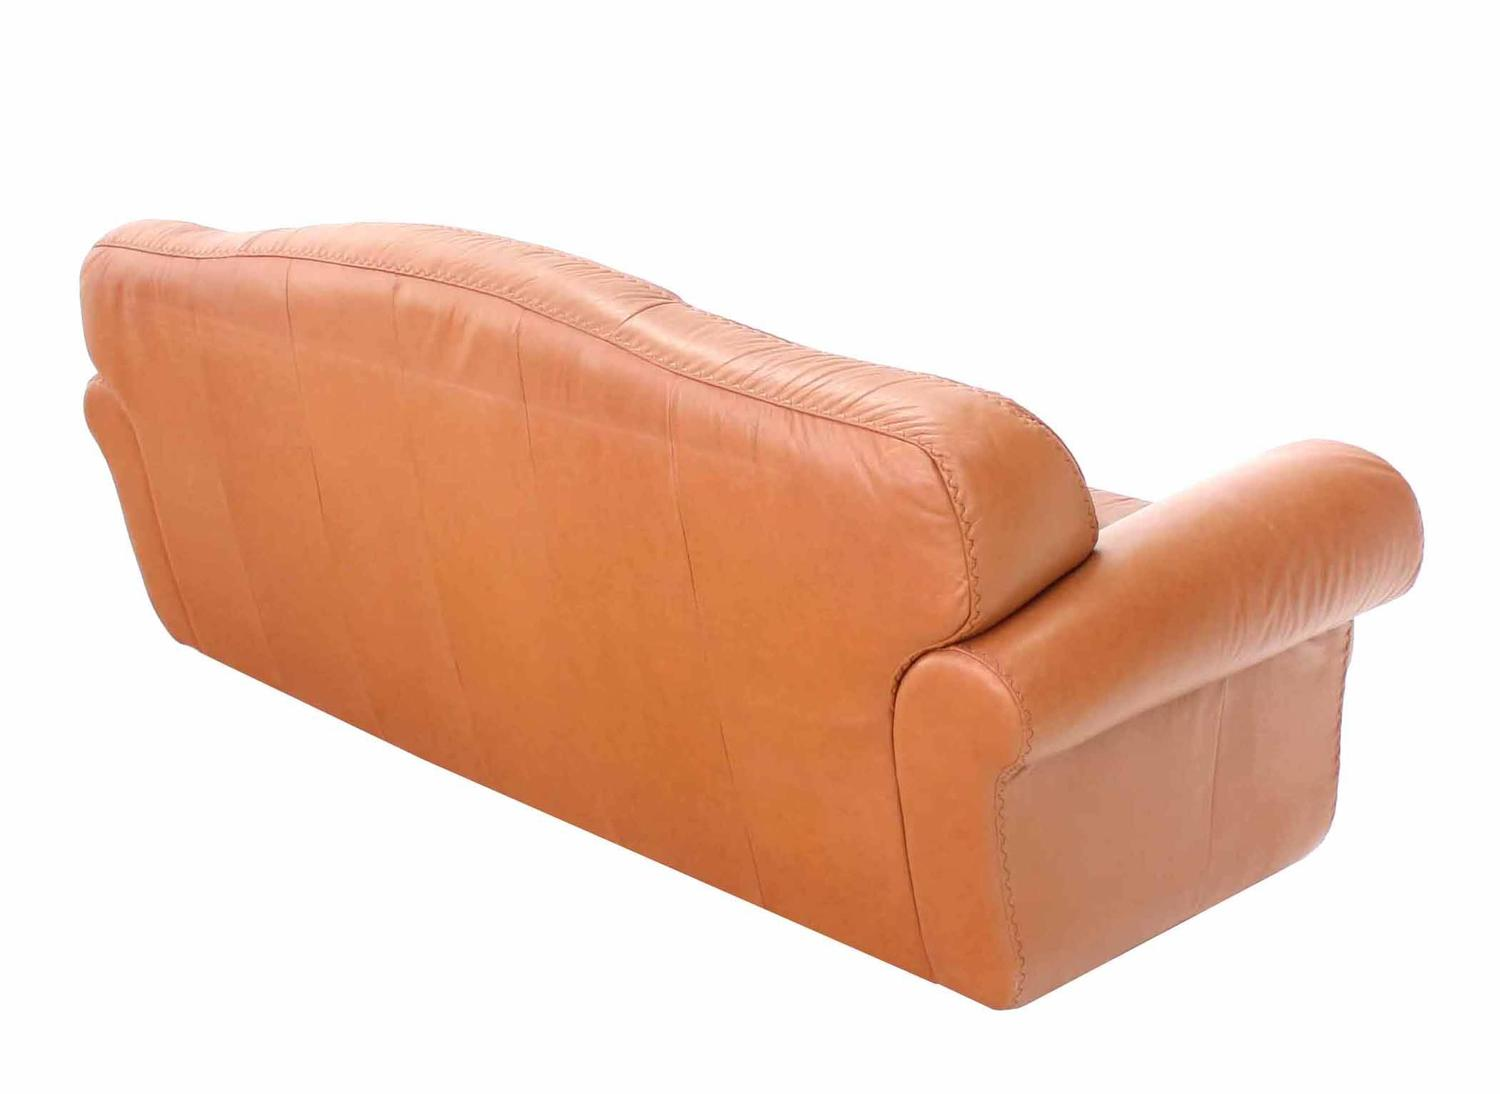 Pair of tan decorative baseball style stitching leather Baseball sofa